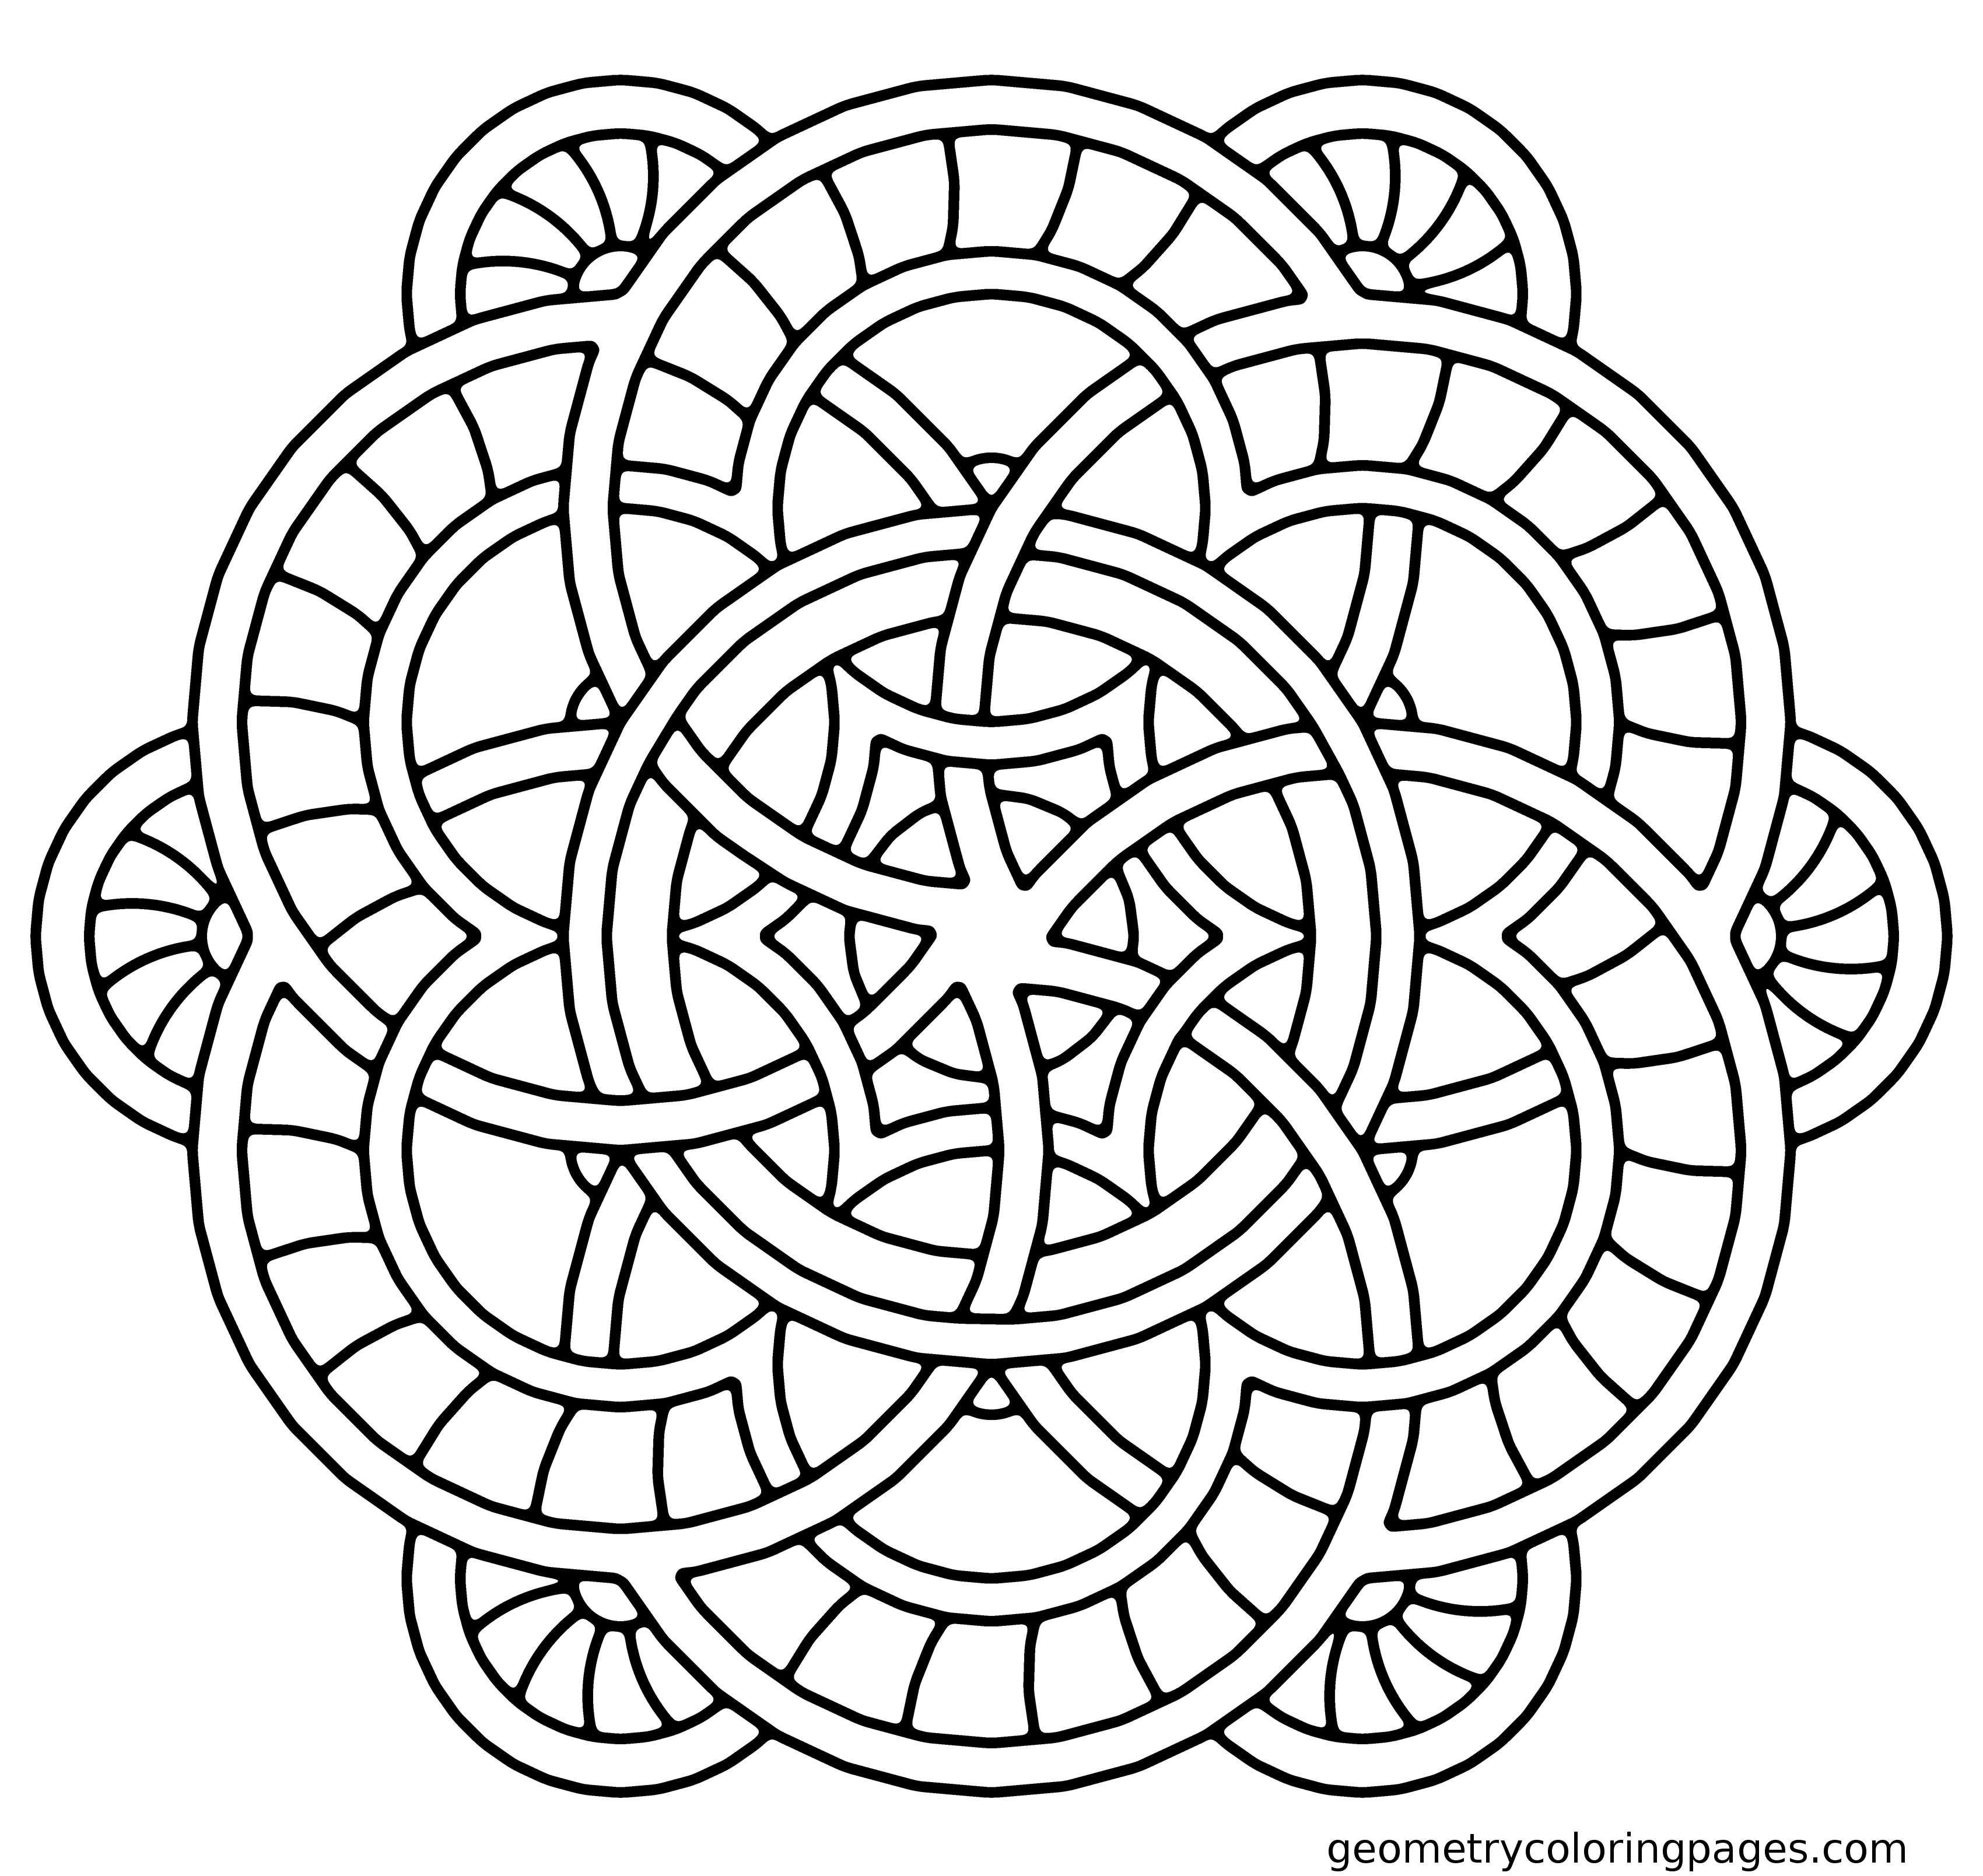 3400x3217 Mandala Coloring Pages Online Trend For Childlife Me New